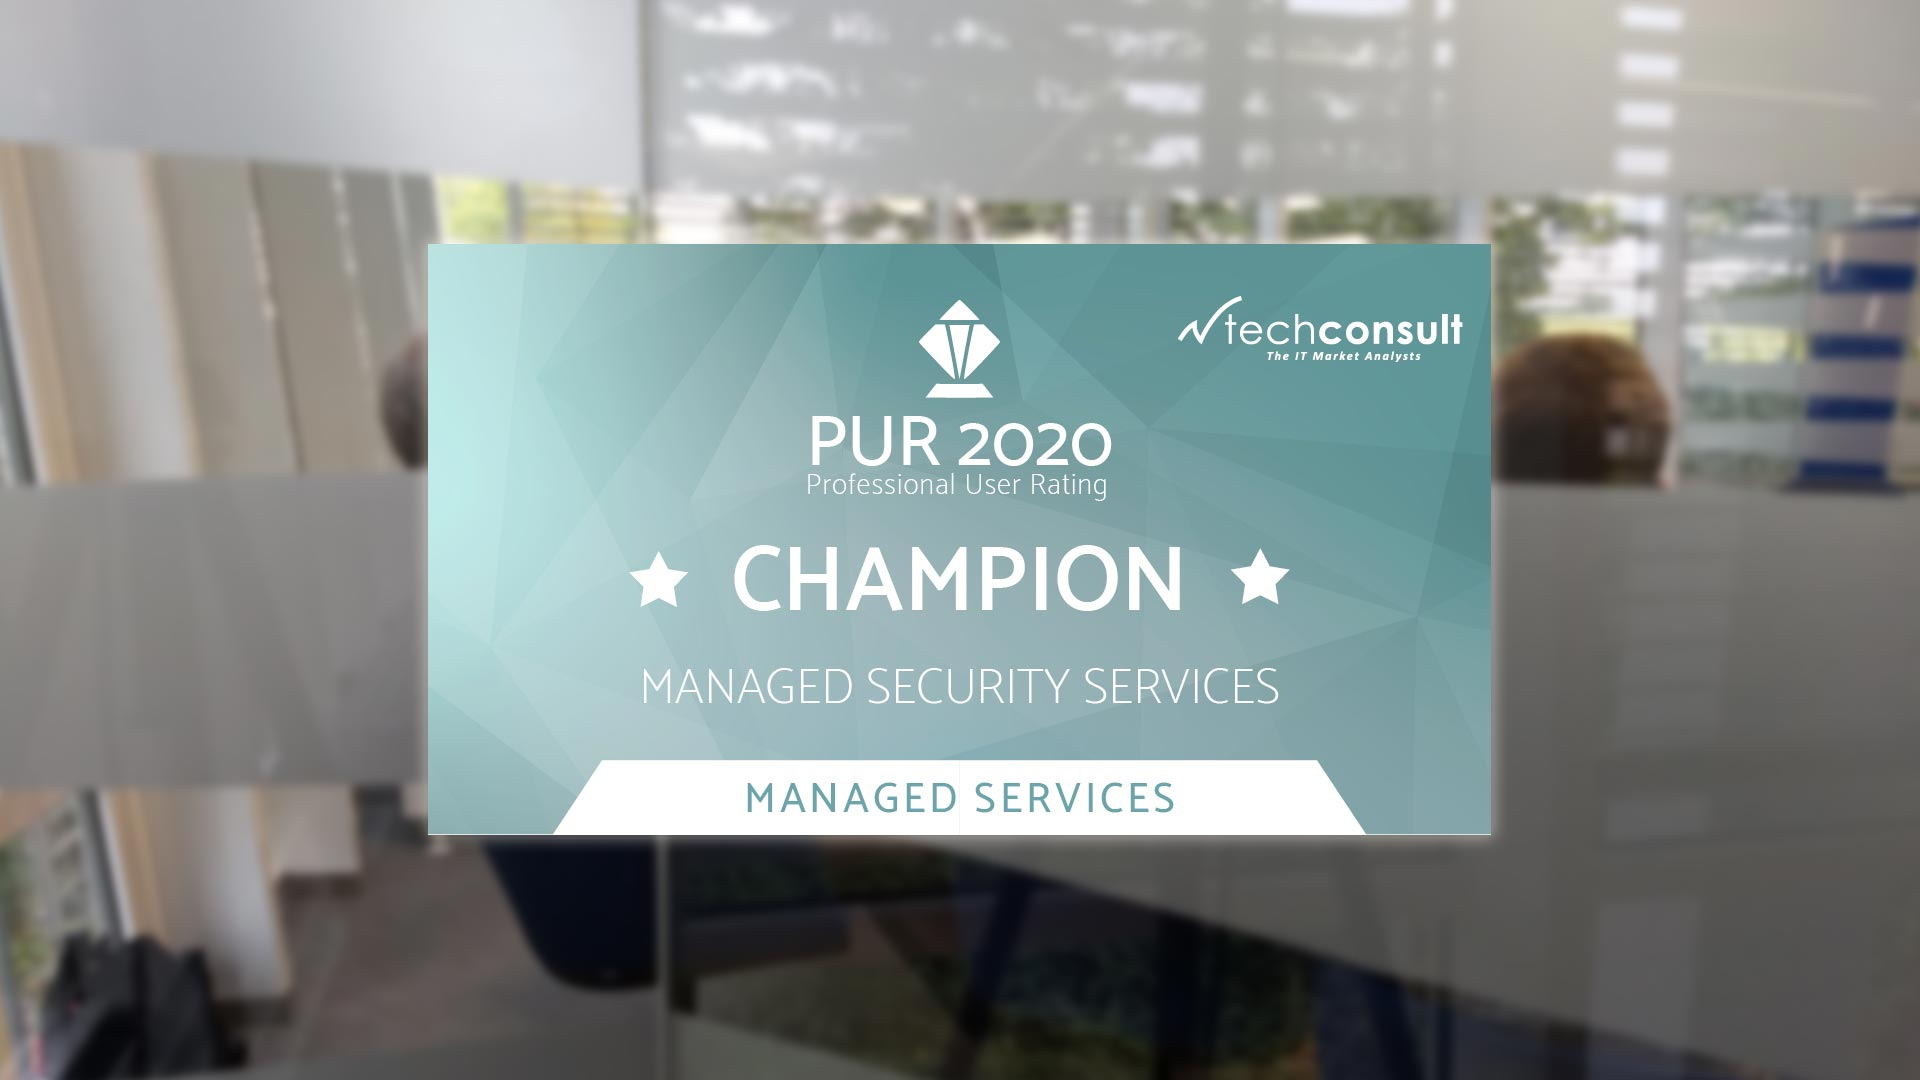 PUR 2020 Champion Managed Security Services